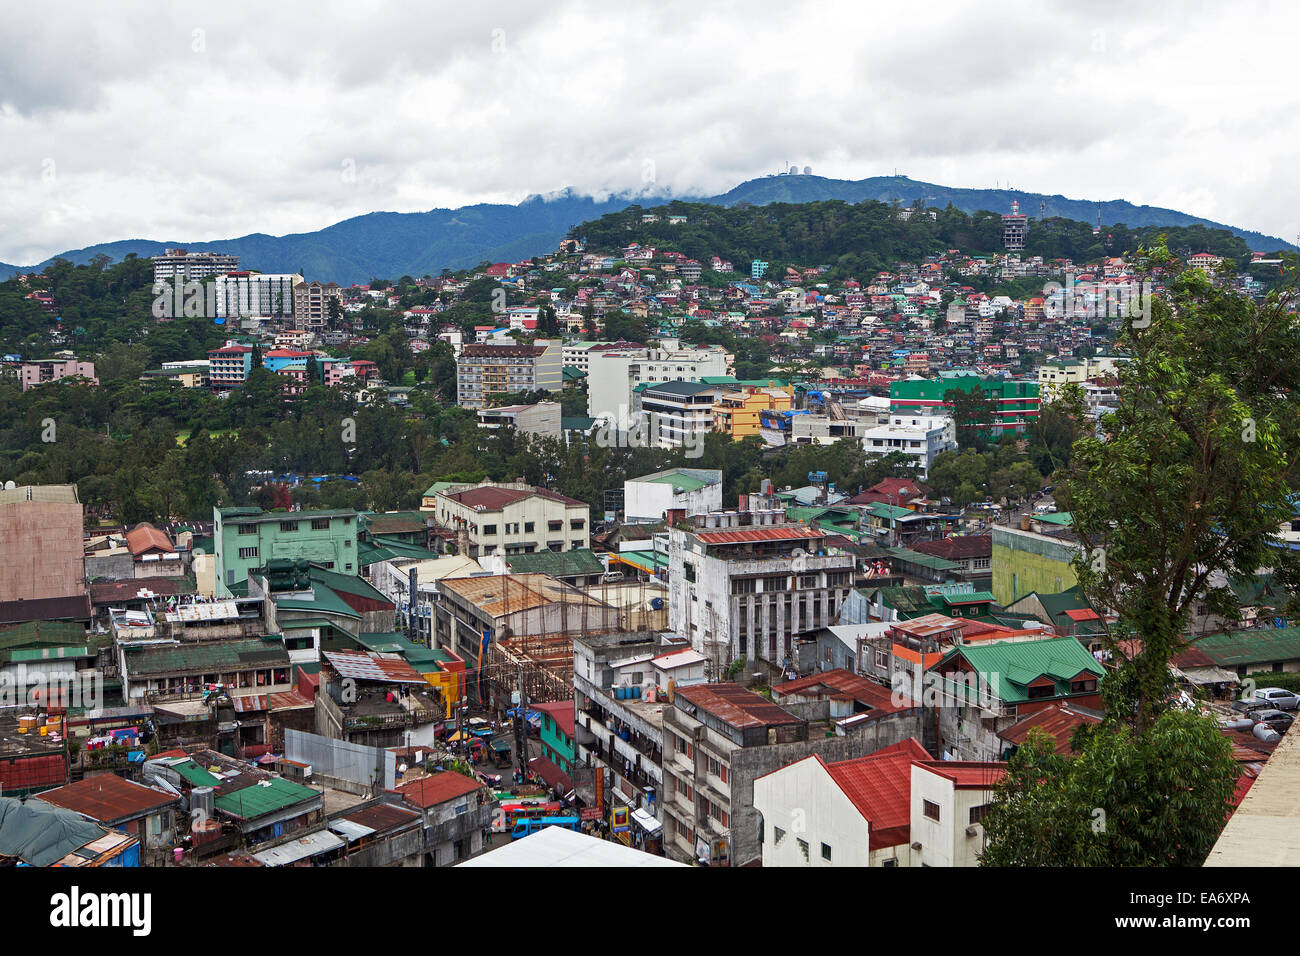 Overpopulated living conditions in Baguio City, Philippine Islands. Commercial building and homes compete for space. - Stock Image